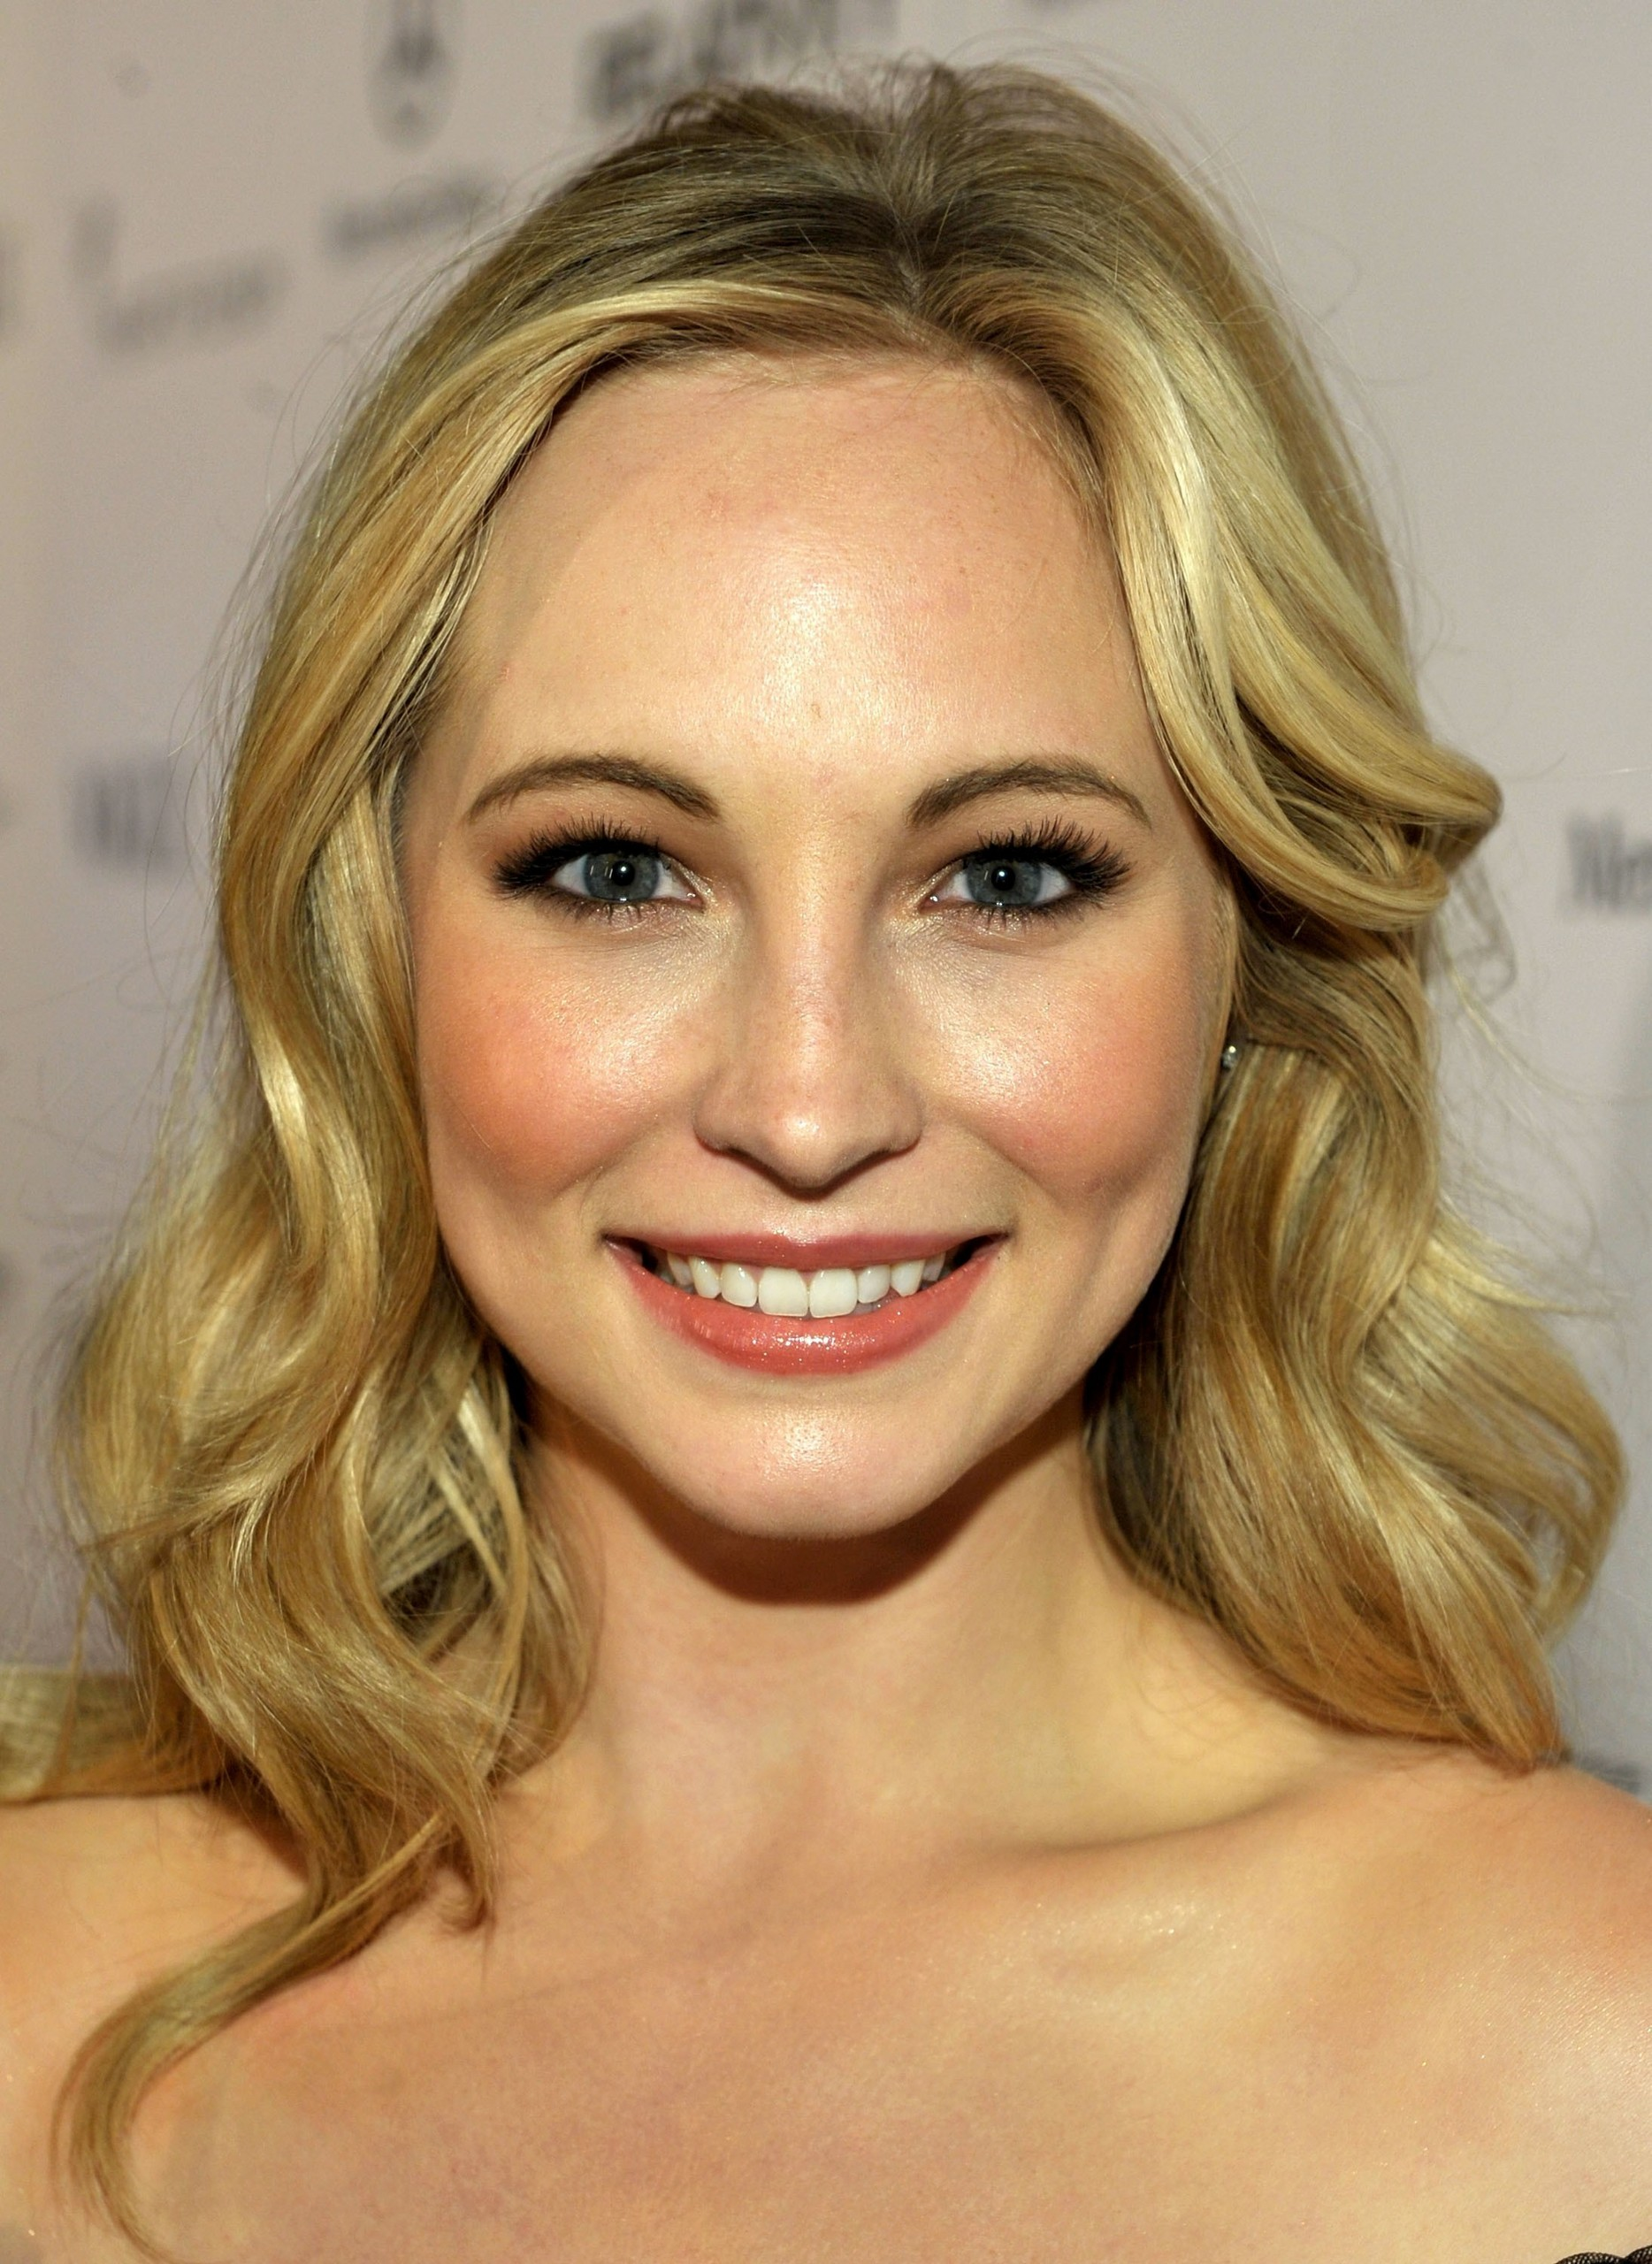 candice accola 2016candice accola gif, candice accola vk, candice accola песни, candice accola photoshoot, candice accola gif hunt, candice accola tumblr, candice accola png, candice accola wiki, candice accola 2016, candice accola instagram, candice accola – go in peace, candice accola king, candice accola how i met your mother, candice accola 2017, candice accola originals, candice accola site, candice accola wikipedia romana, candice accola icons, candice accola joe king, candice accola daily